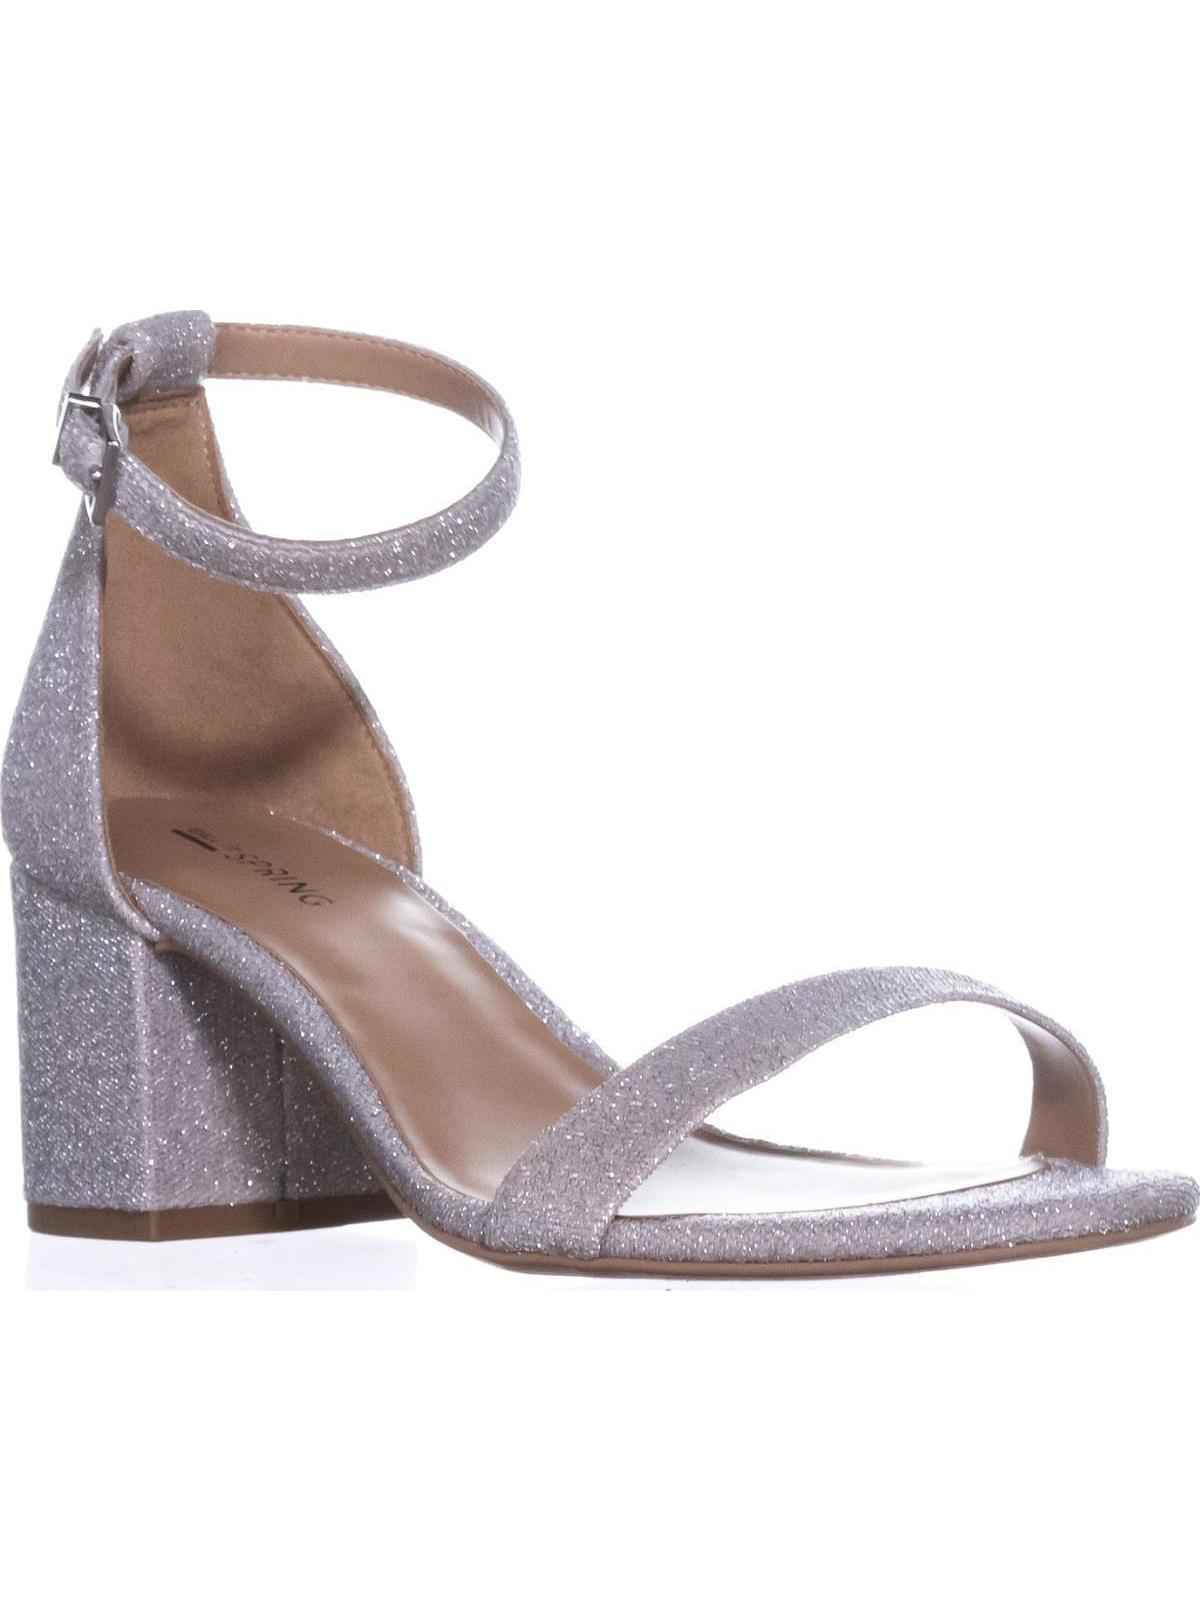 46076658035 Call It Spring Stangarone Ankle Strap Sandals